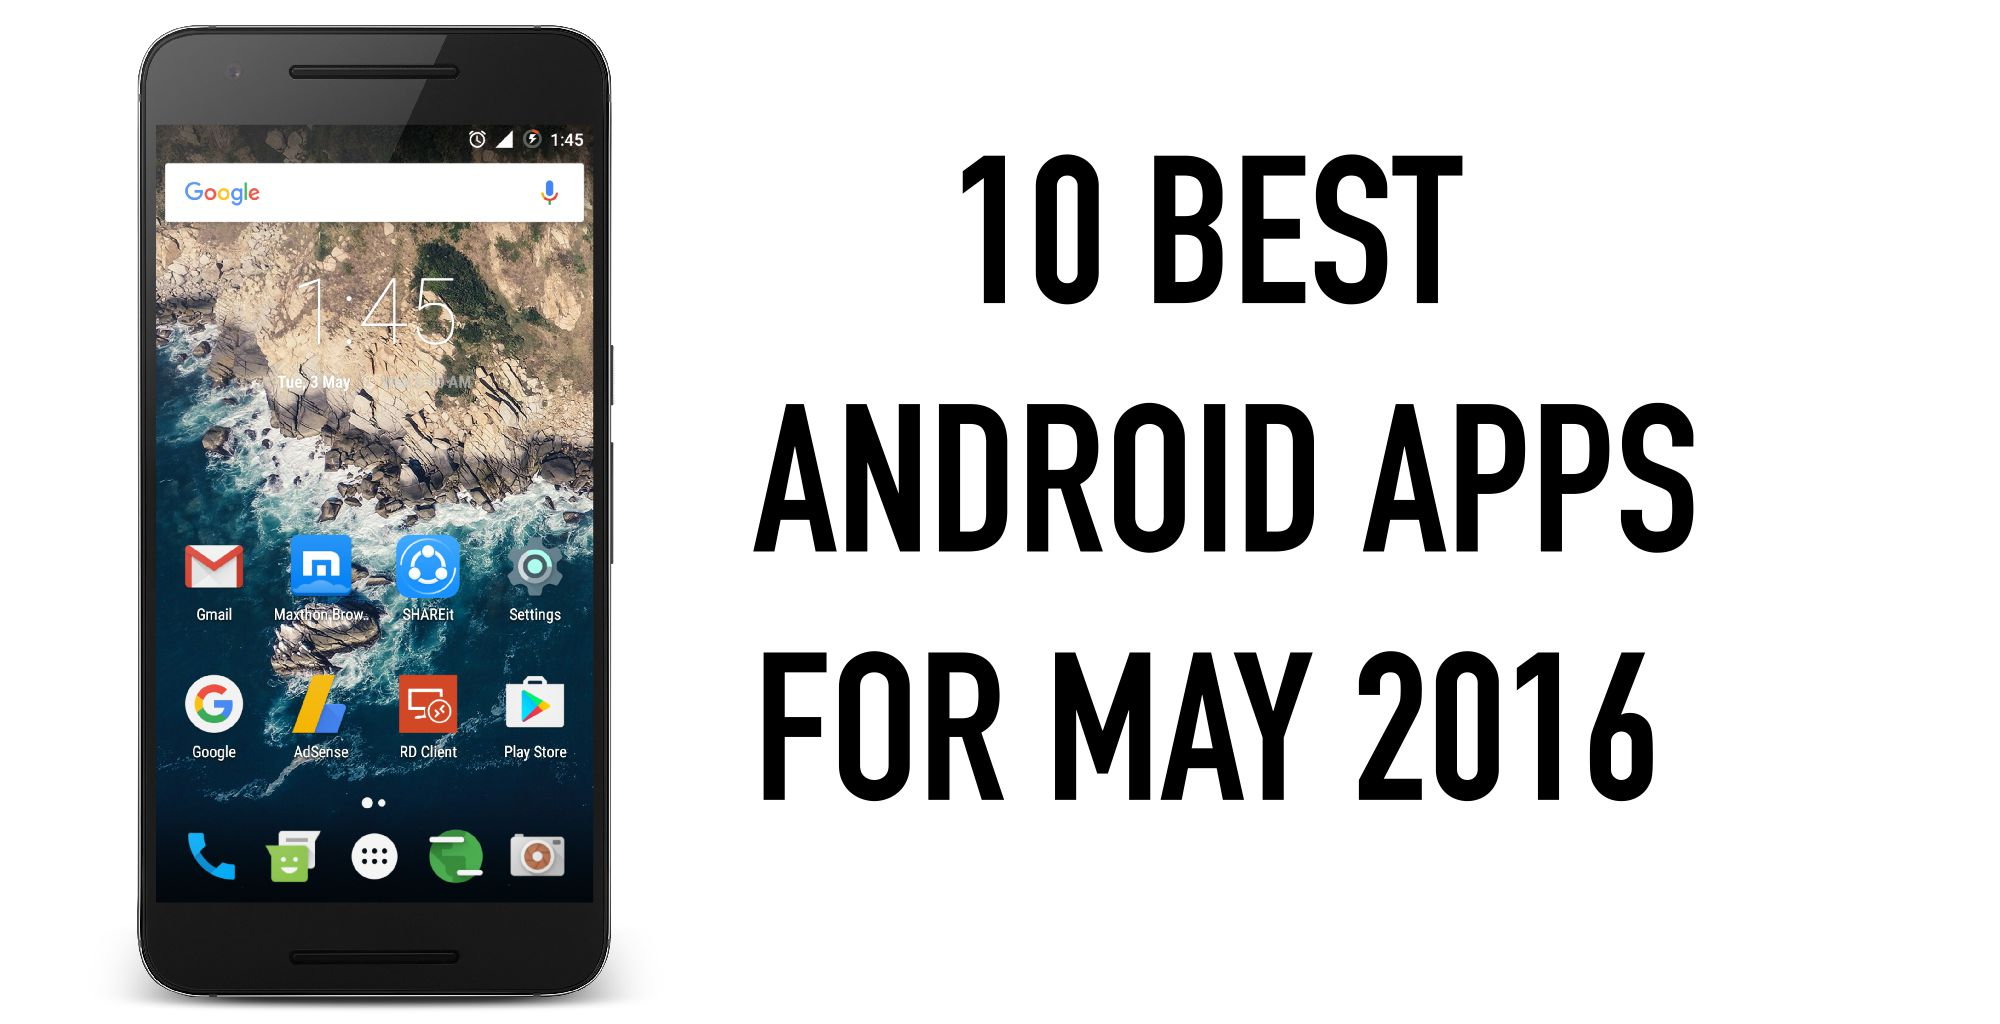 Phone Best Android Apps For Phones top 10 best android apps for may 2016 2016